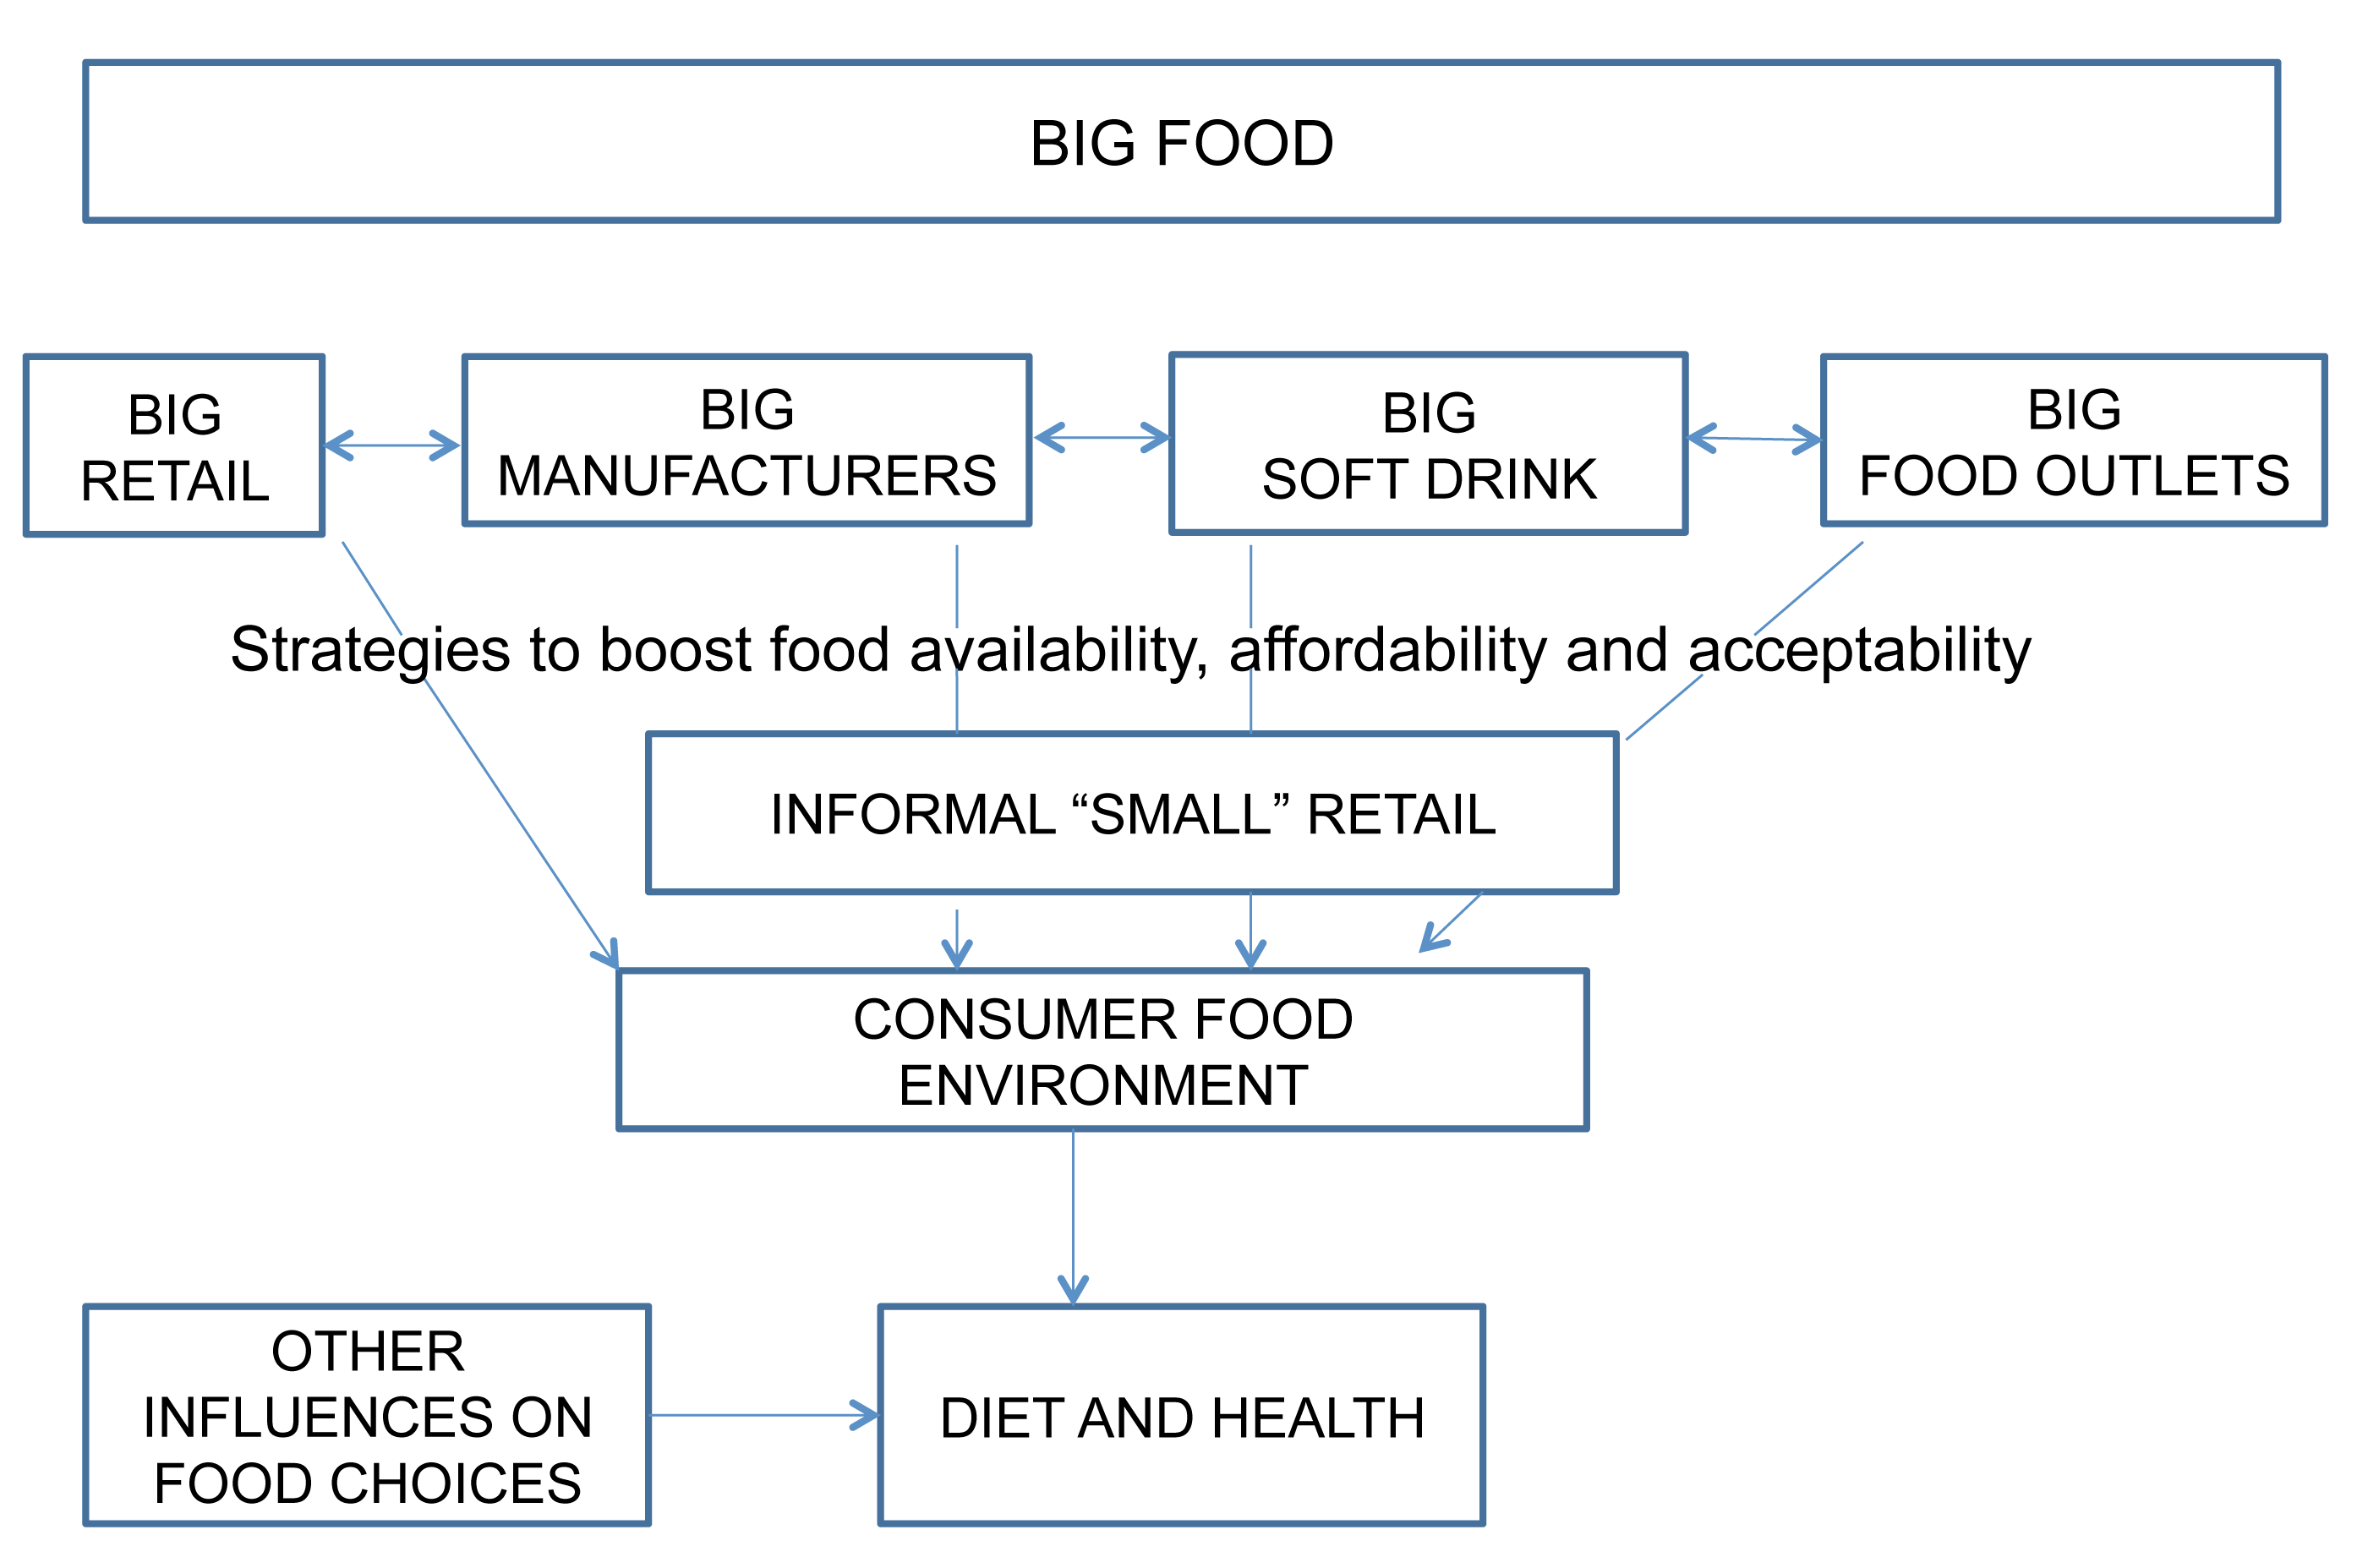 Hypothesized link between Big Food and the consumer food environment.